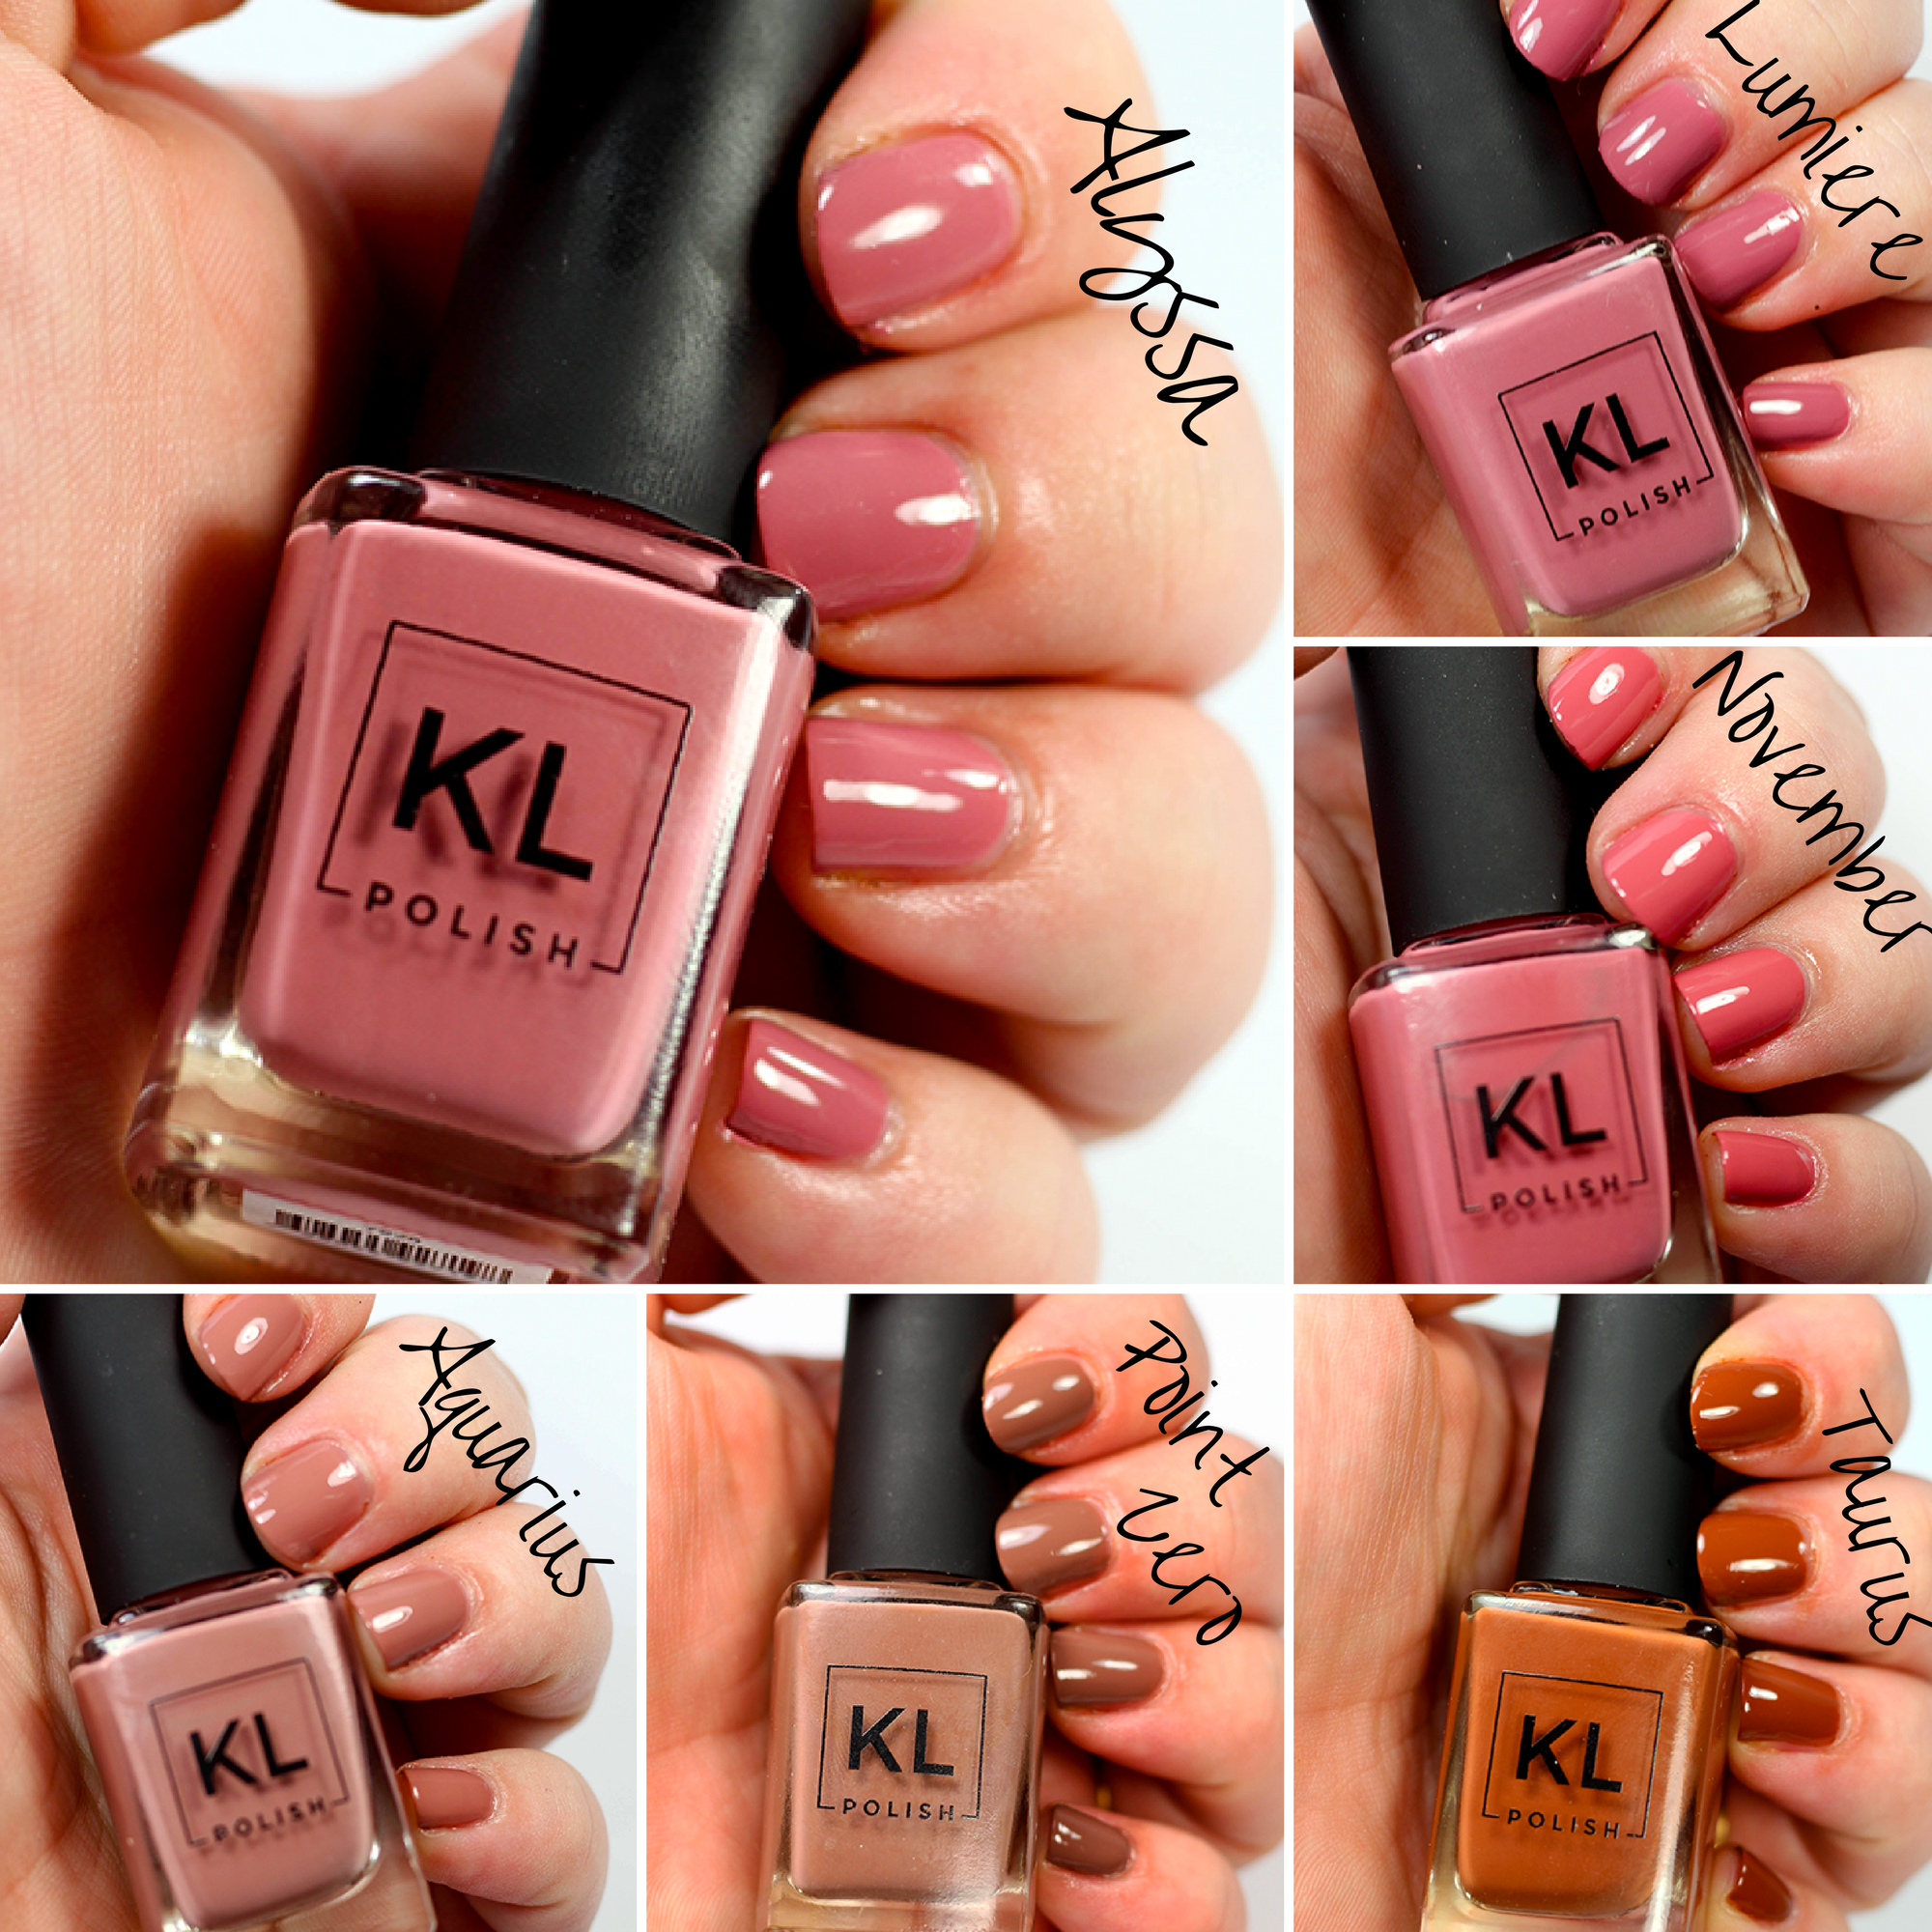 KL Polish Lips and Tips Collection - Southeast by Midwest